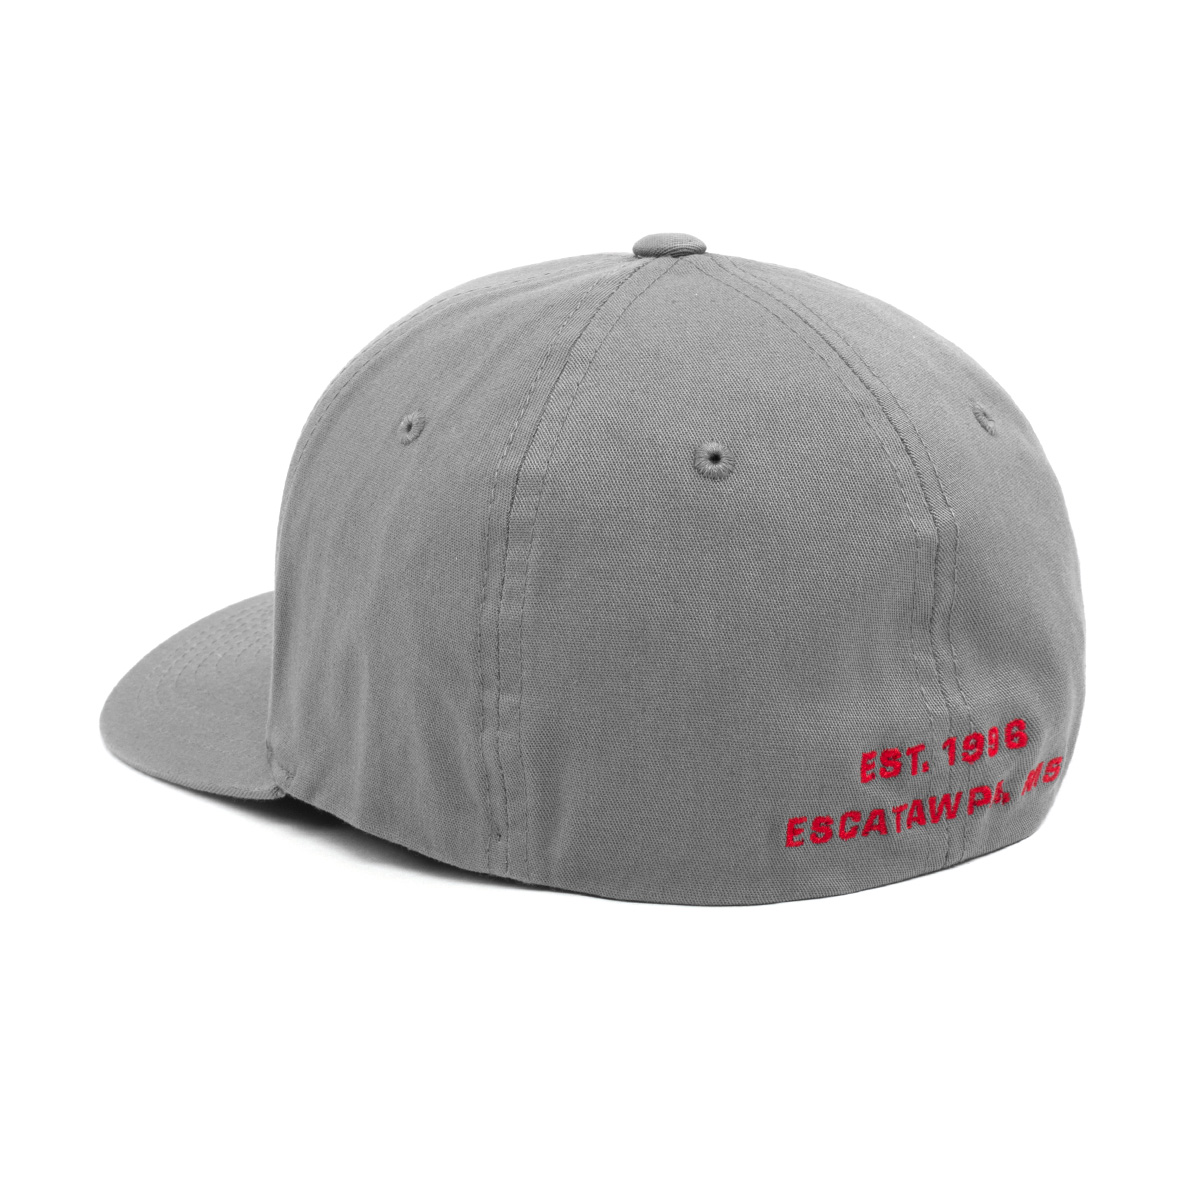 3 Doors Down Grey Flex Fit Ballcap